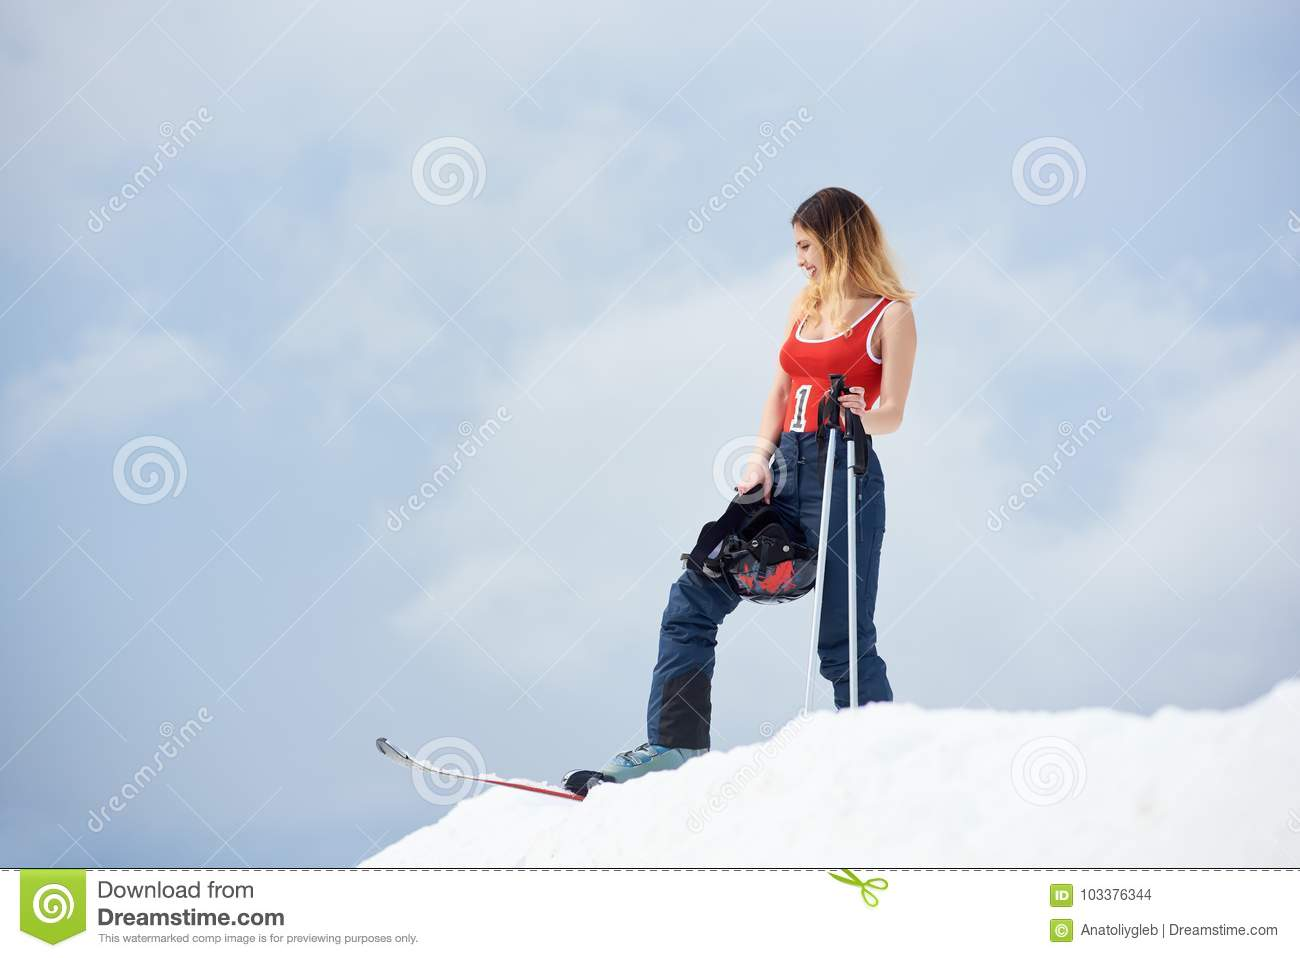 8a3dc0d15c4 Woman Skier On The Top Of The Snowy Hill With Skis At Ski Resort ...